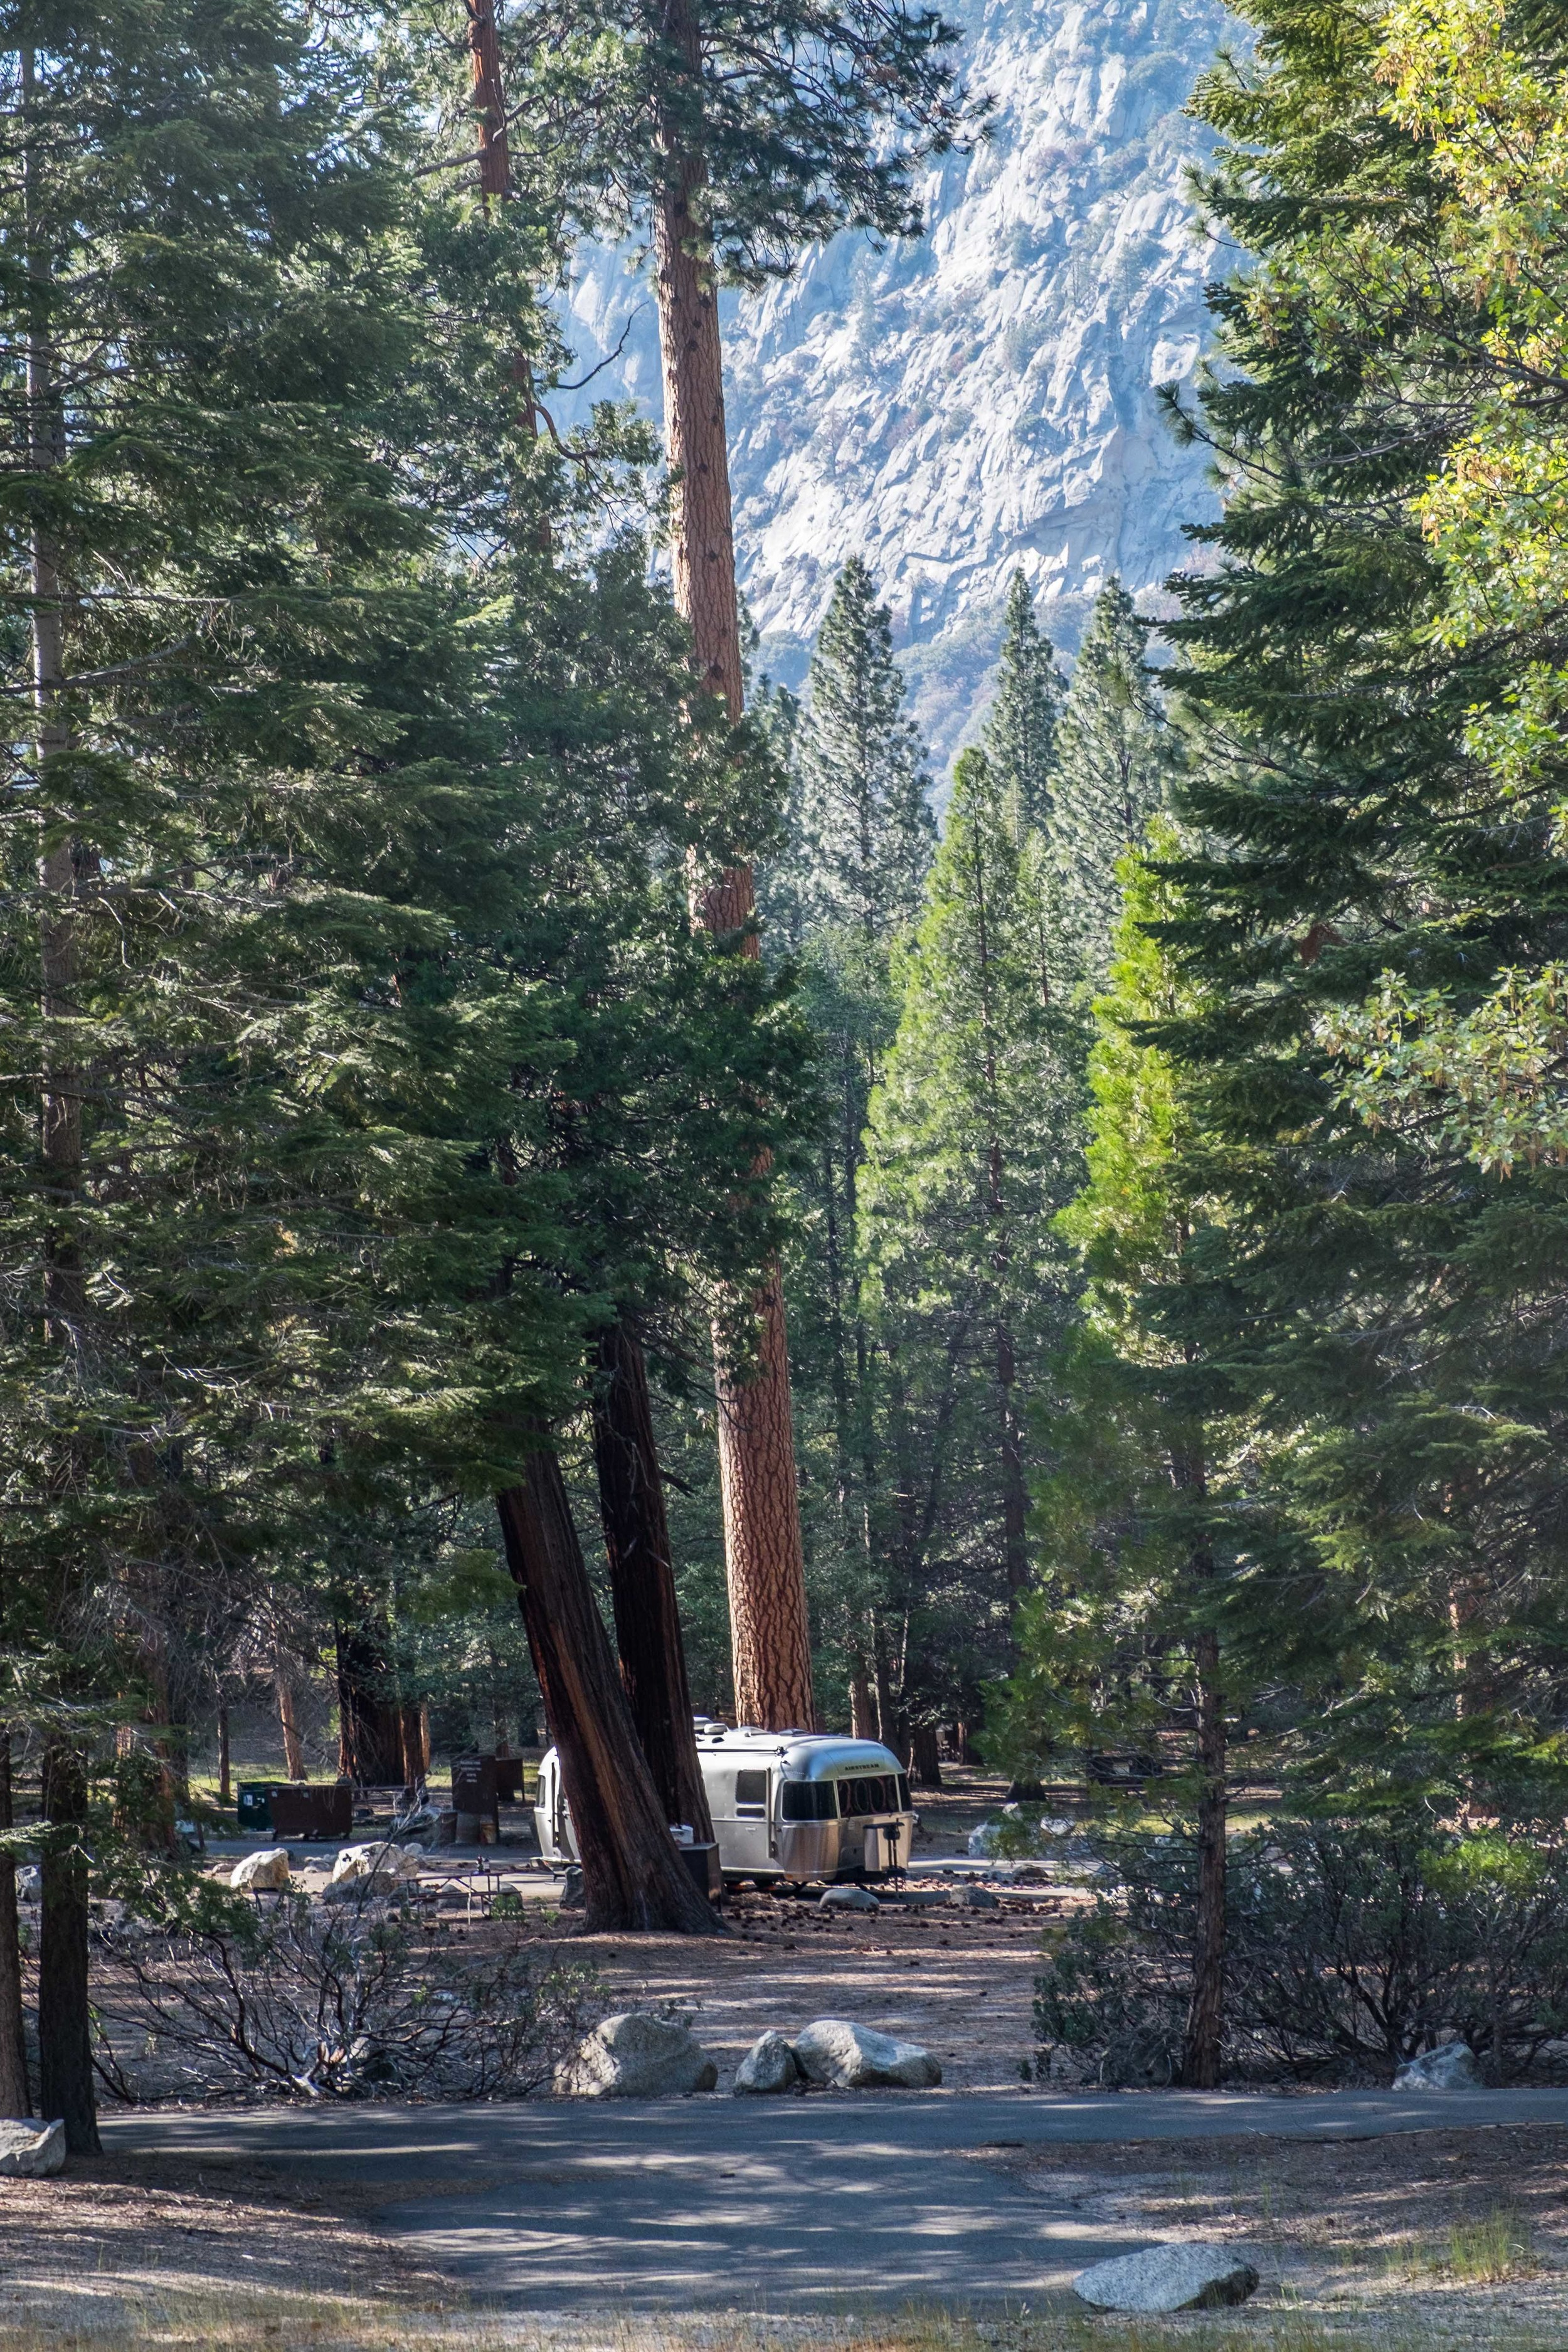 The Sentinel Campground at Kings Canyon National Park in California.